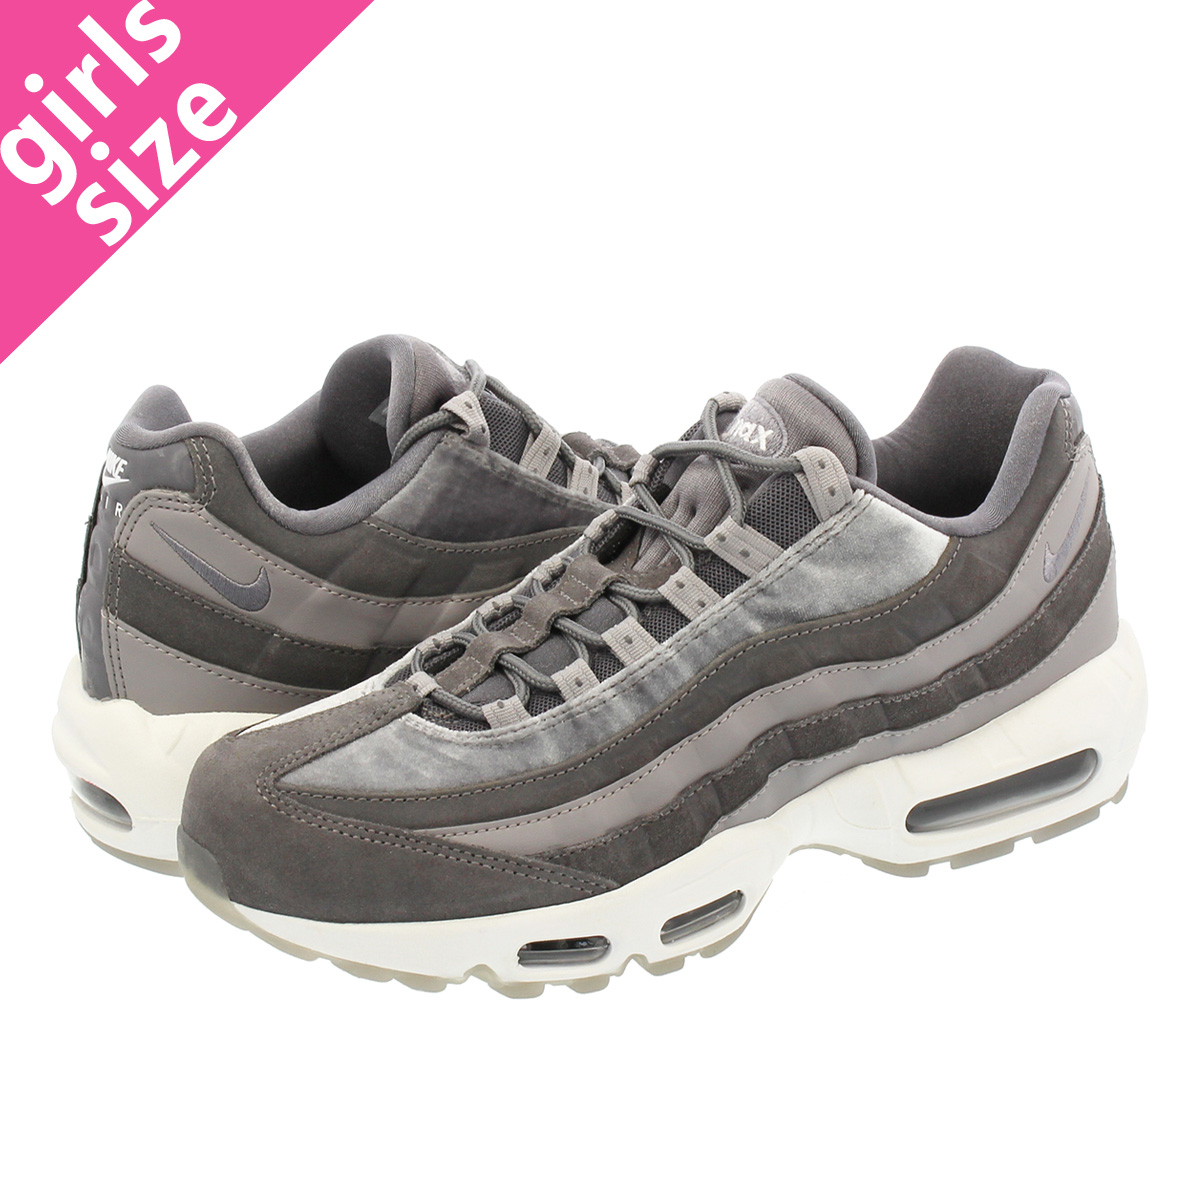 best sneakers b4ff1 b893f NIKE WMNS AIR MAX 95 Nike women Air Max 95 LX GUNSMOKE/GUNSMOKE/ATMOSPHERE  GREY aa1103-003-l